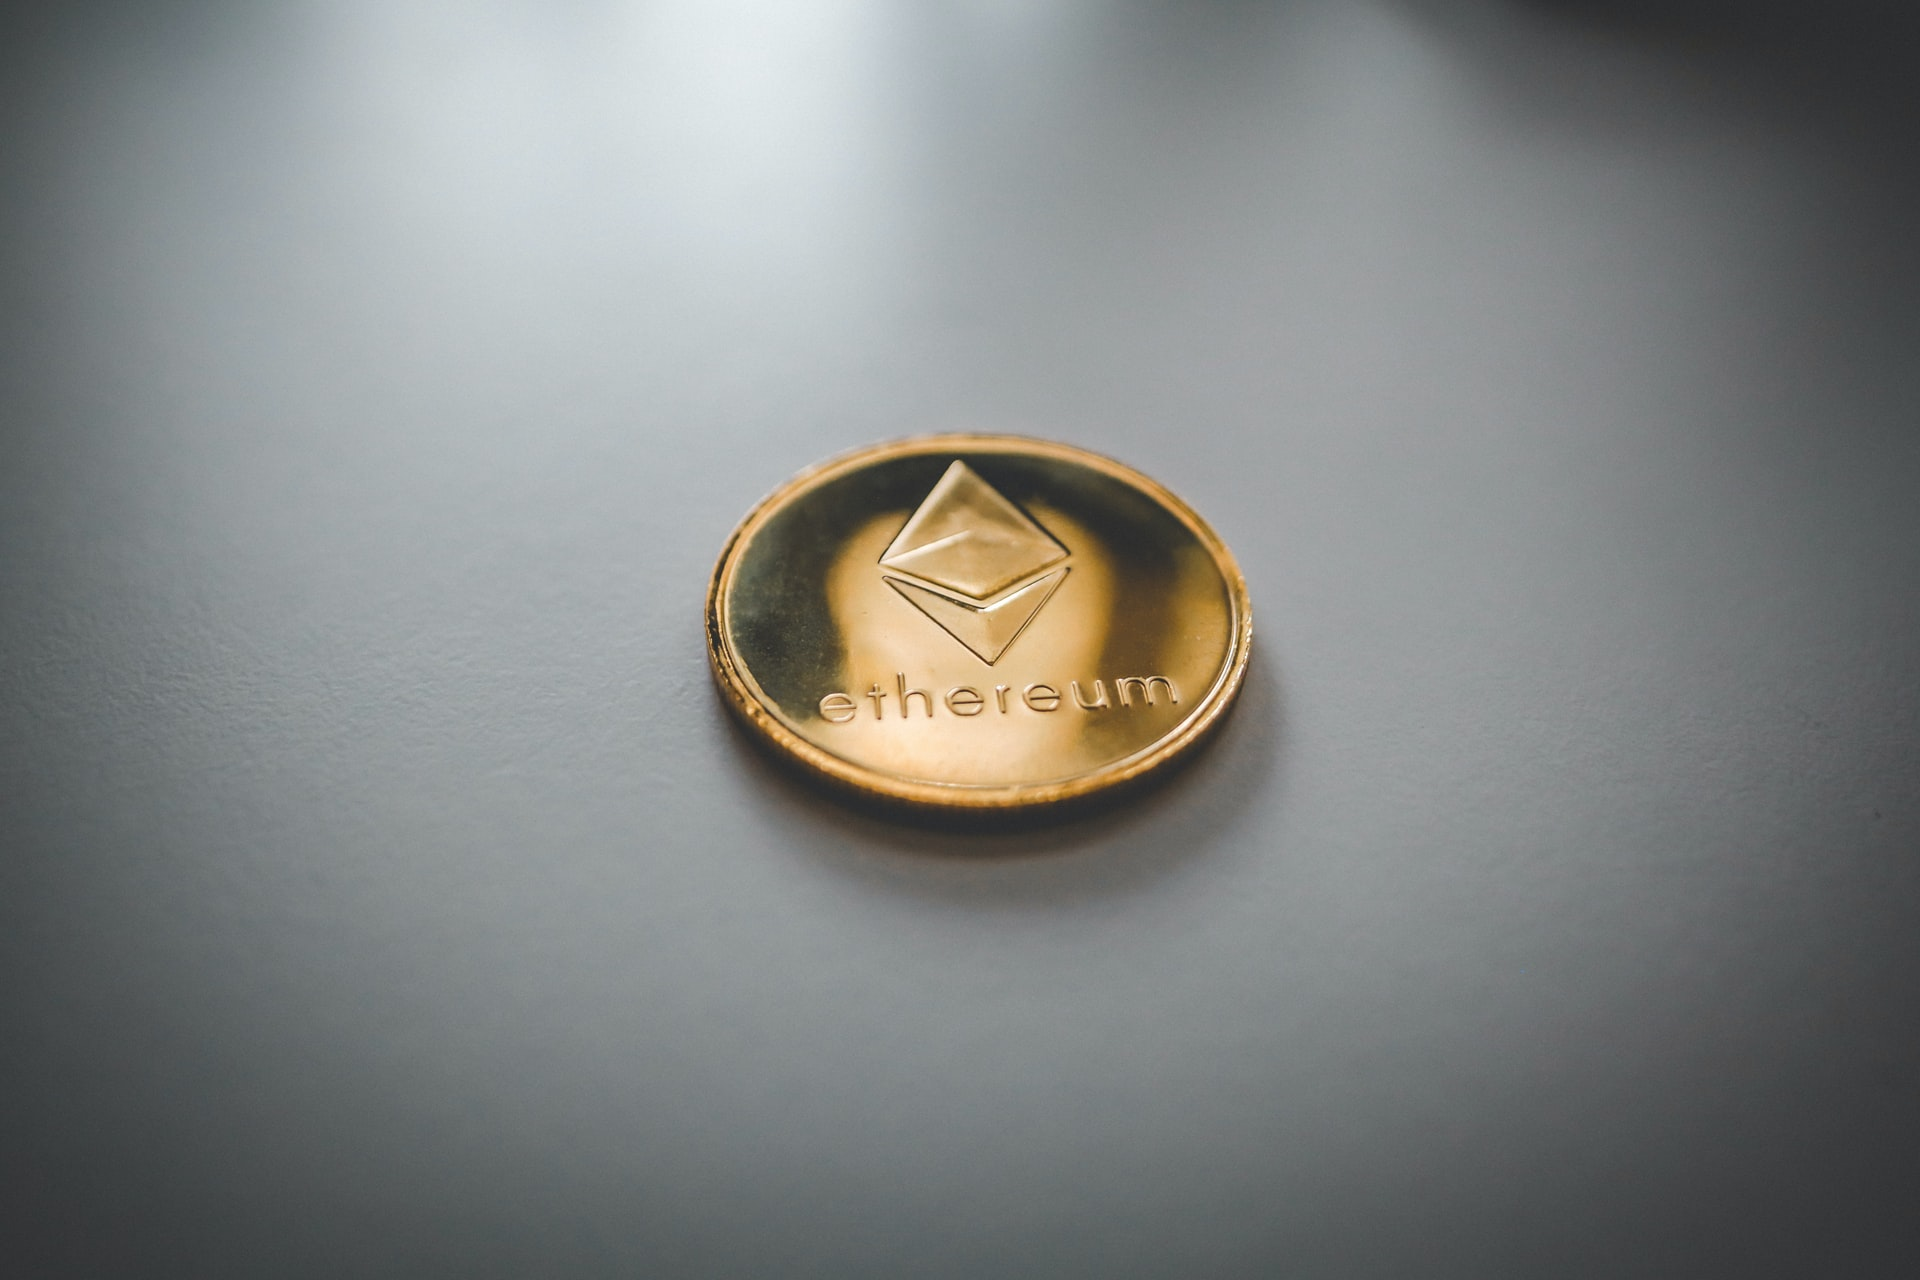 Ethereum coin on table